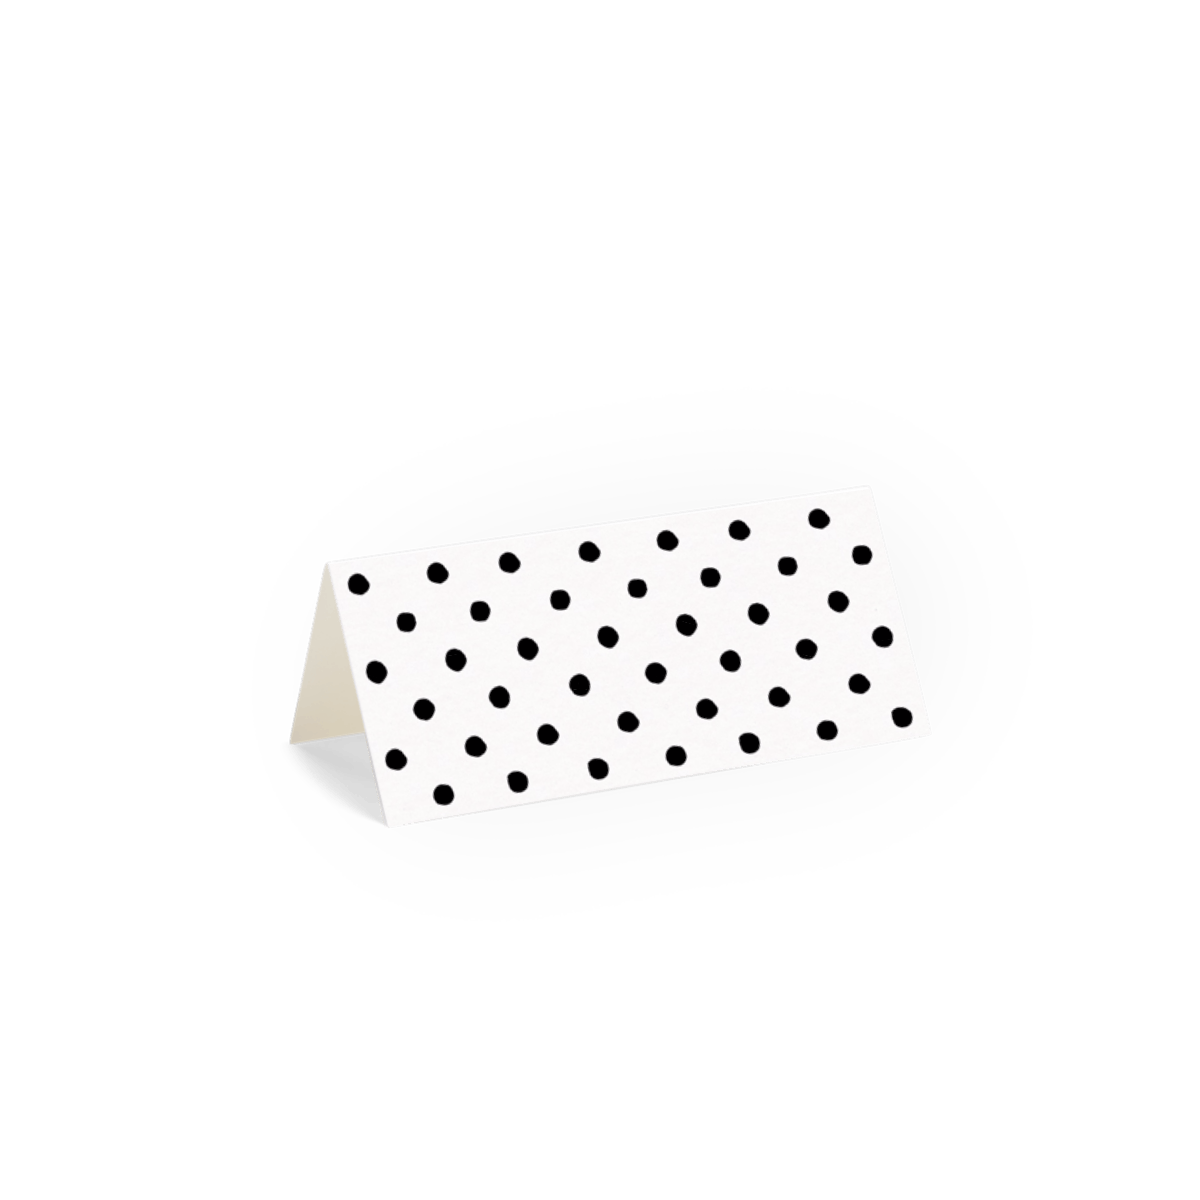 Https%3a%2f%2fwww.papier.com%2fproduct image%2f82083%2f15%2fpainted polka dot 19799 arriere 1562065377.png?ixlib=rb 1.1